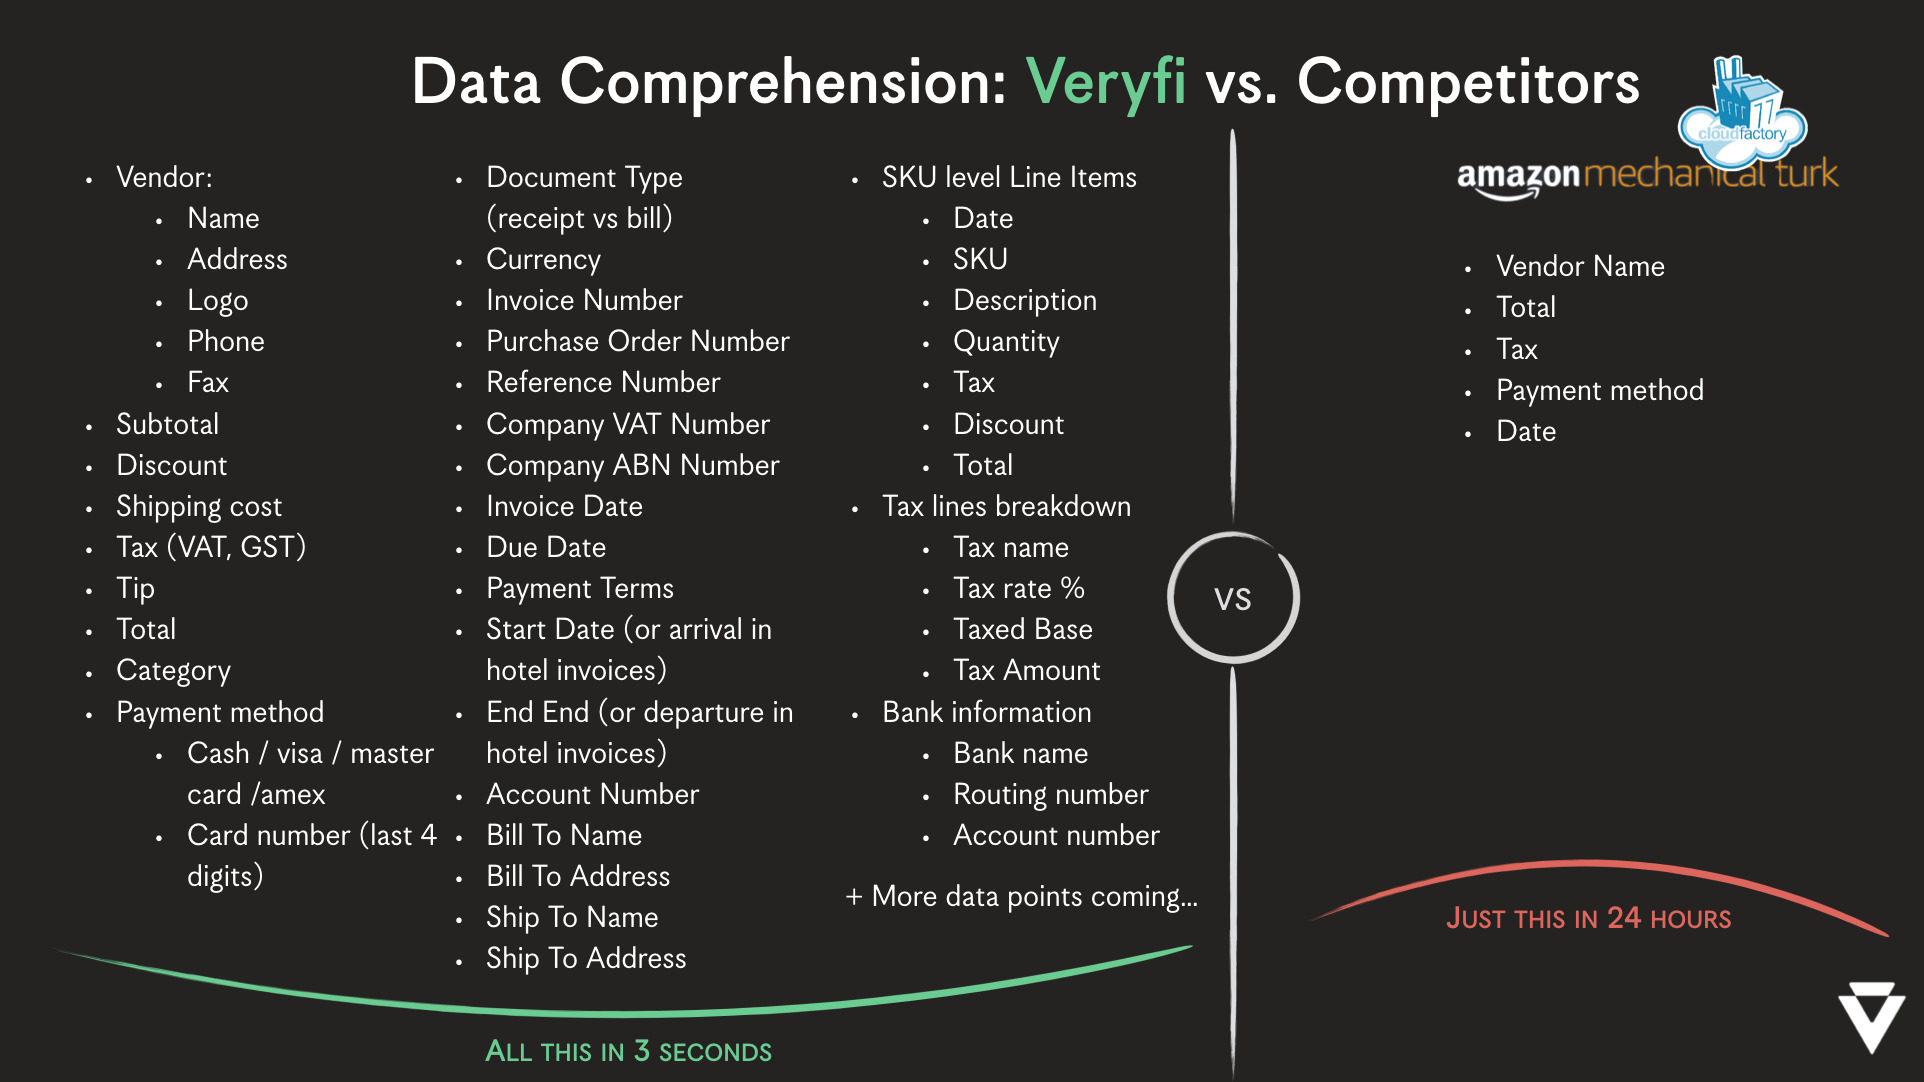 Veryfi's Data Comprehension vs Competitors like Cloudfactory, Amazon Turk (mTurk) and others